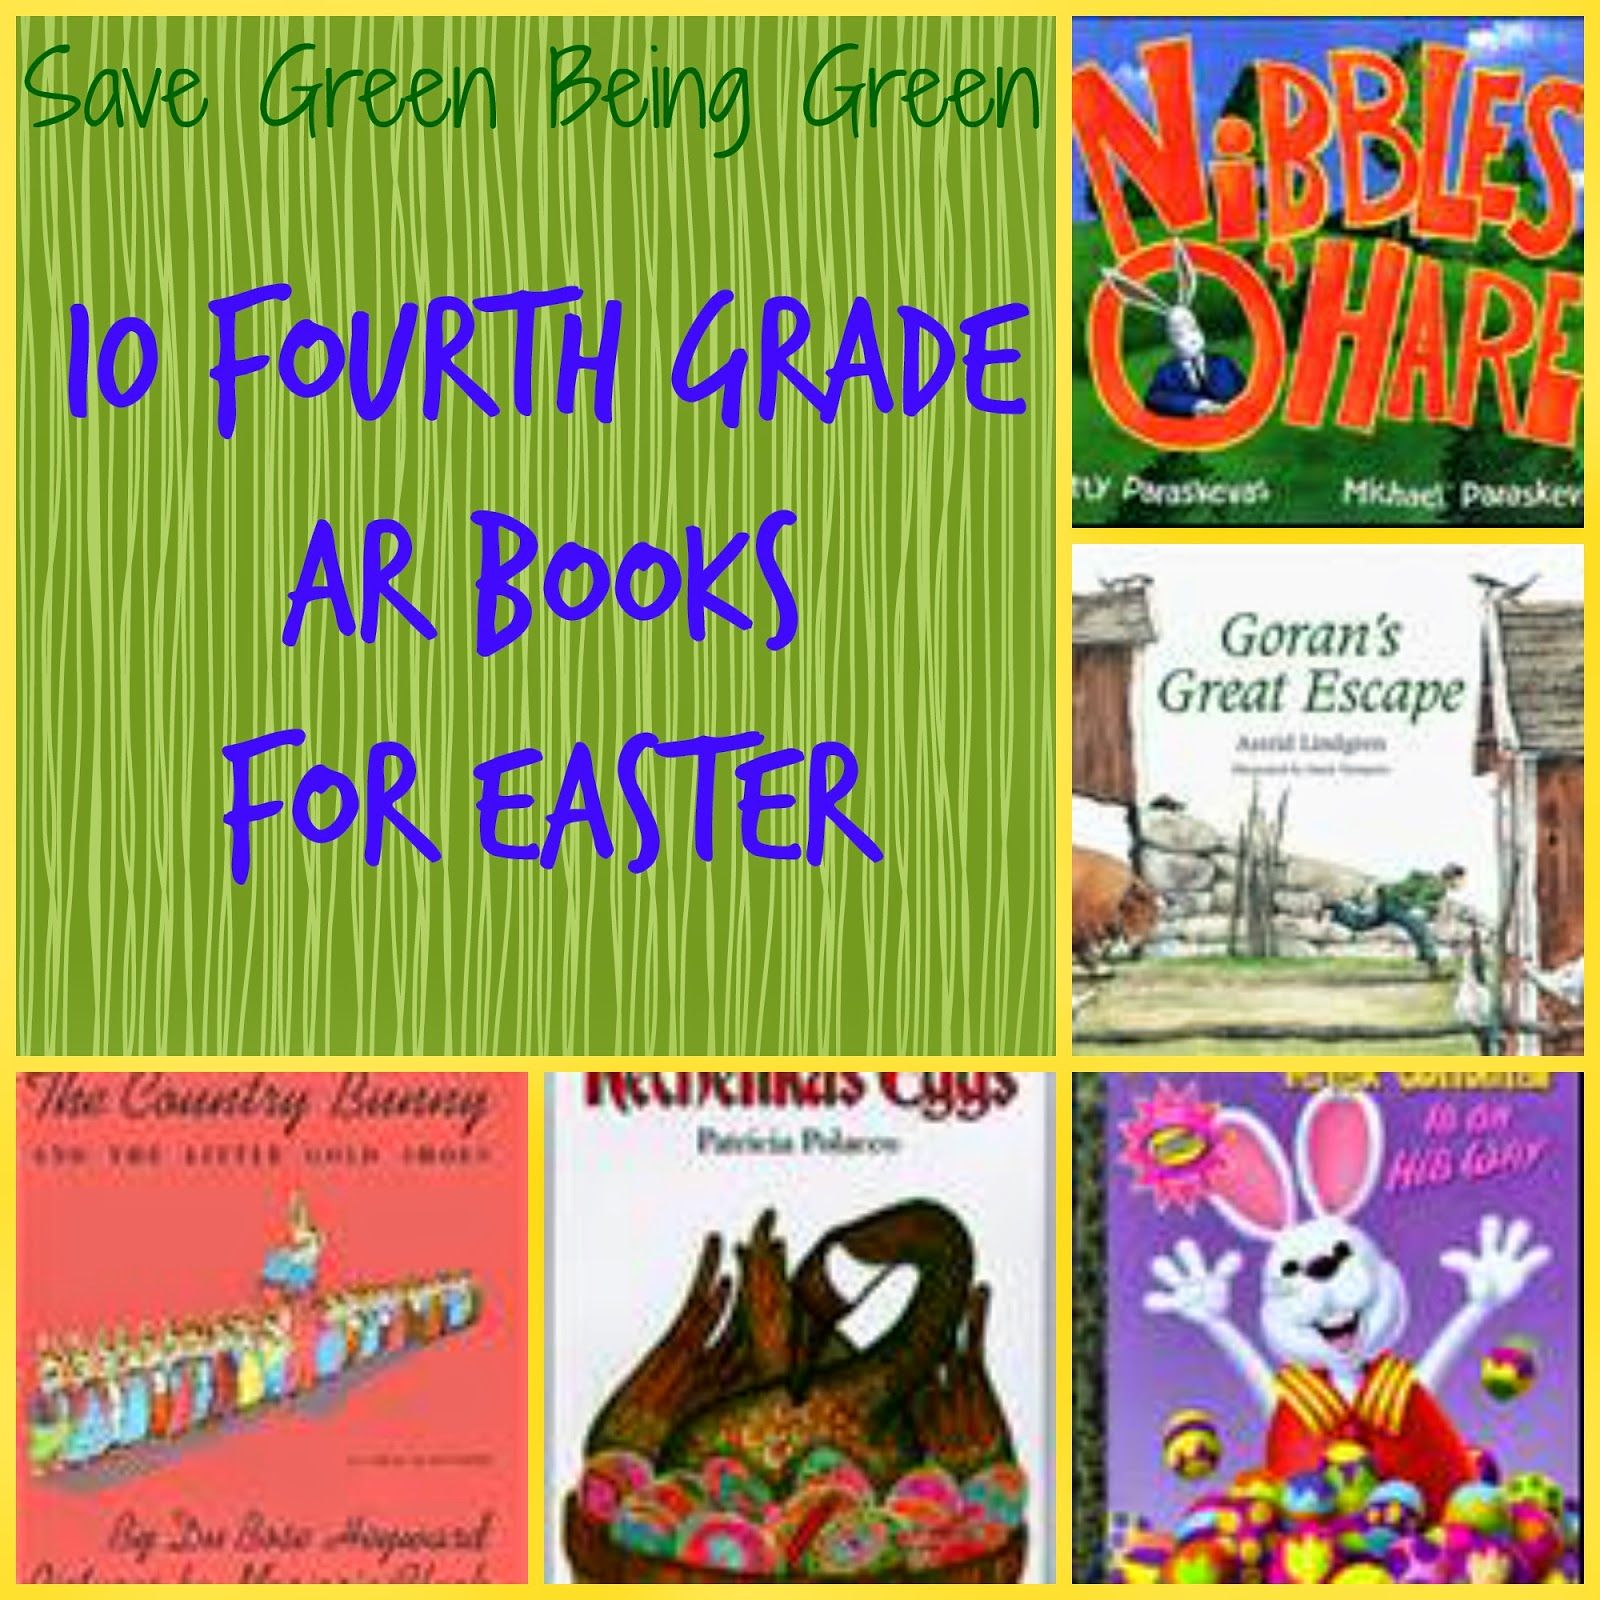 10 fourth grade level ar books for easter accelerated reader 10 fourth grade level ar books for easter basket ideasaccelerated readerholiday negle Choice Image